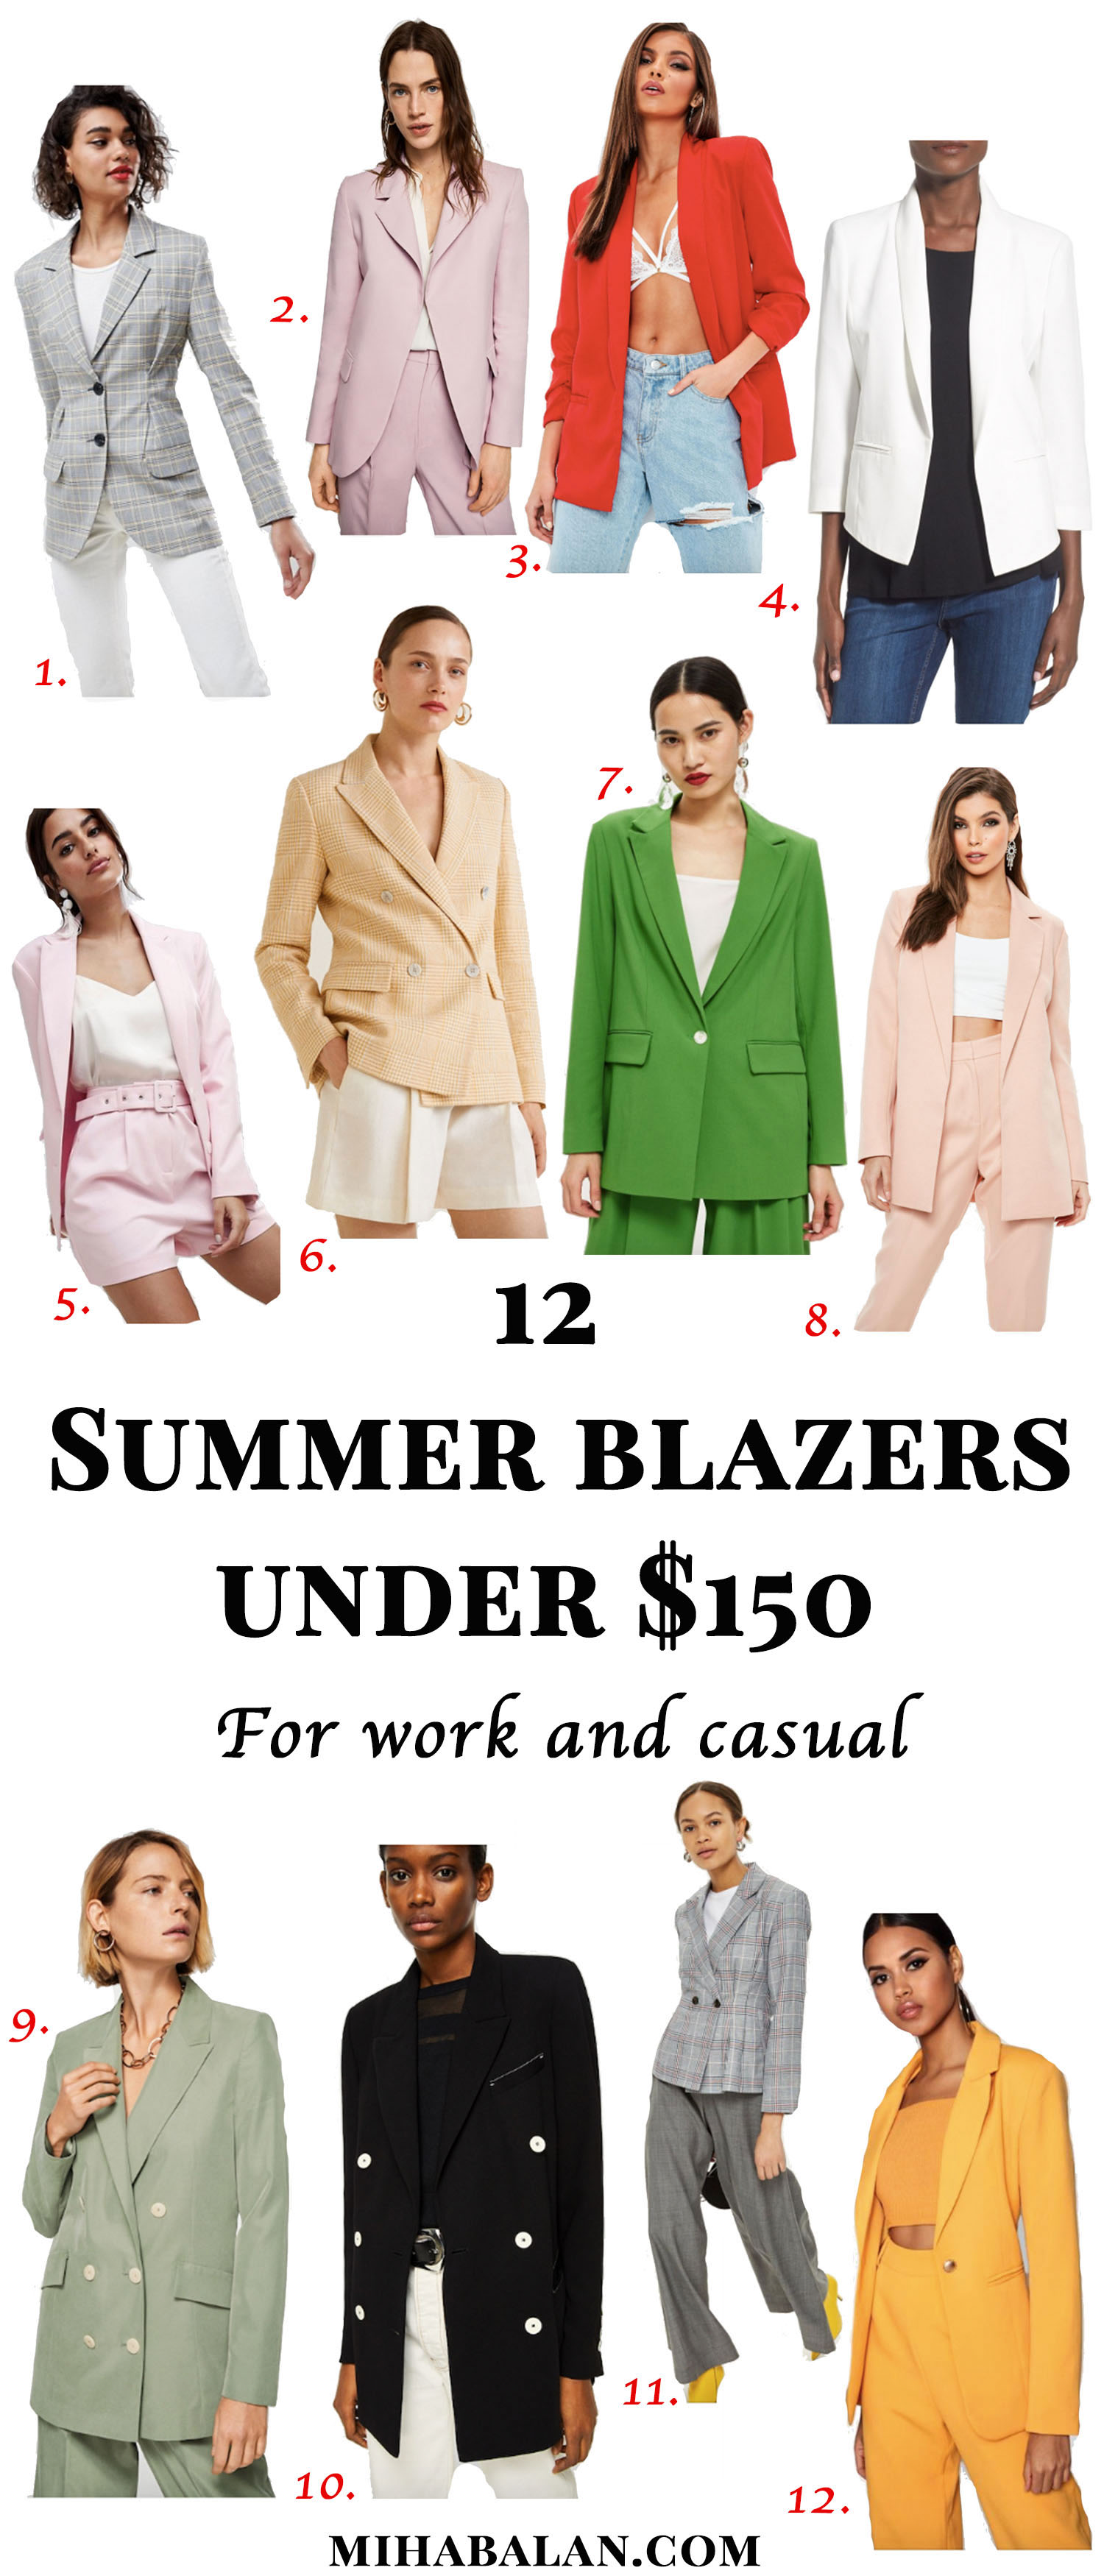 12 summer blazers for work and casual under $150, work wear, stylish work wear, summer fashion. summer style